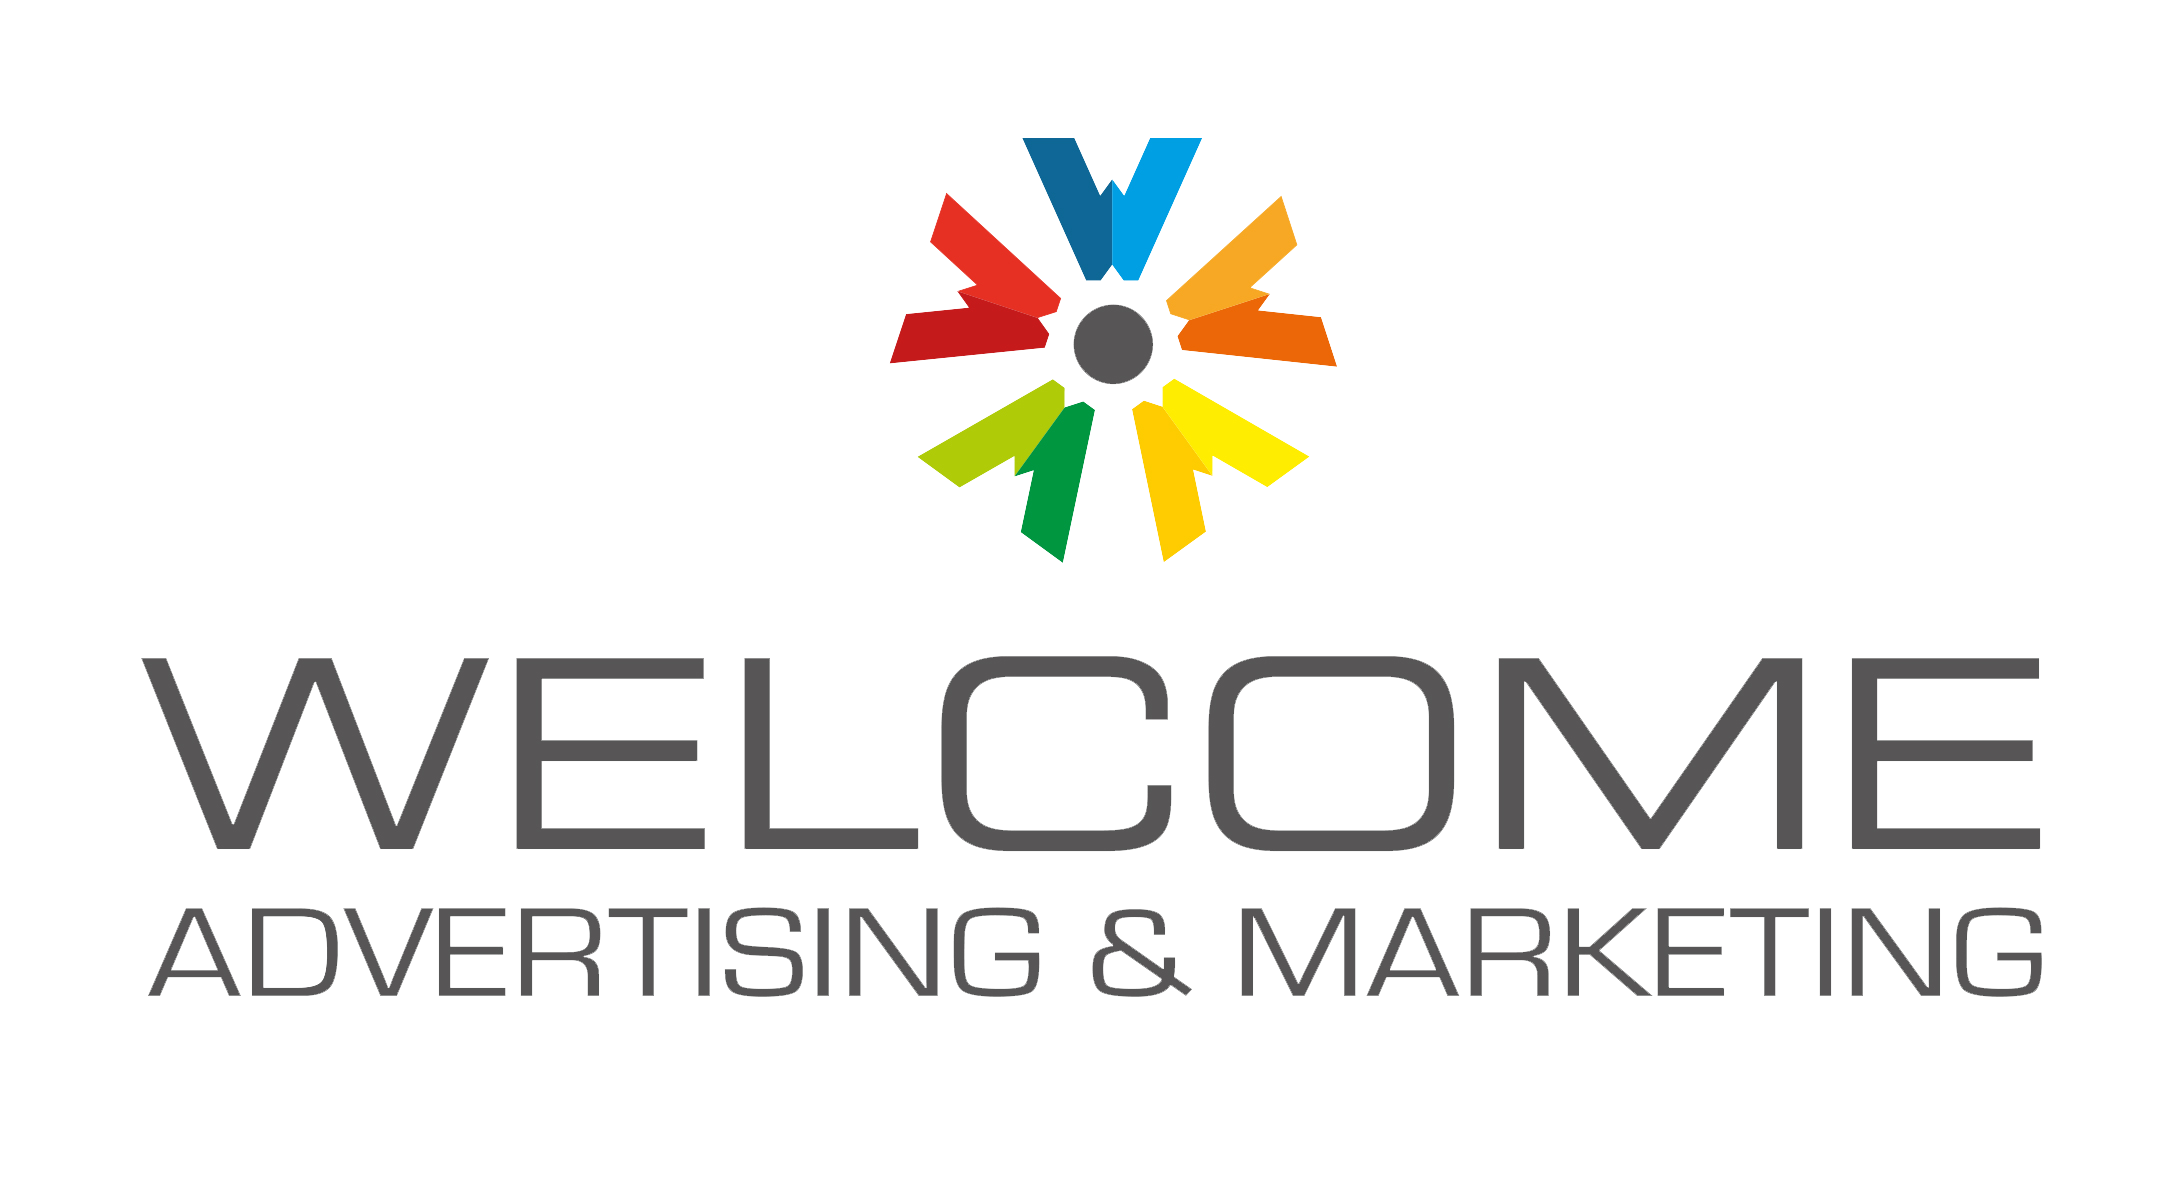 Welcome Adverstising & Marketing Pvt. Ltd.